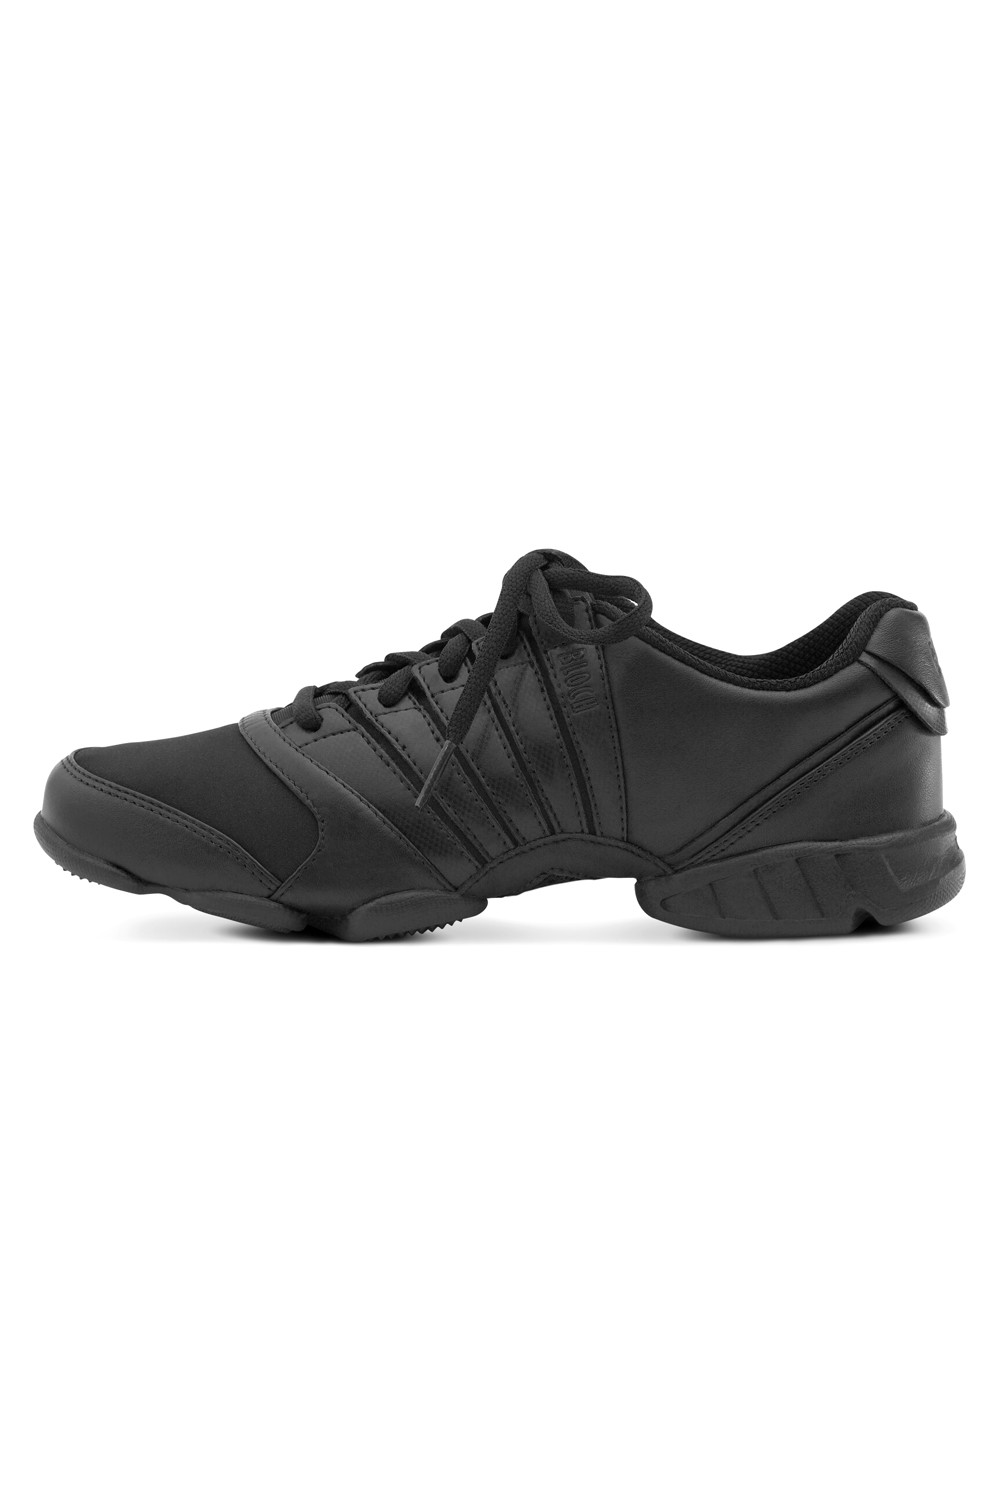 Trinity - Homme Men's Dance Sneakers